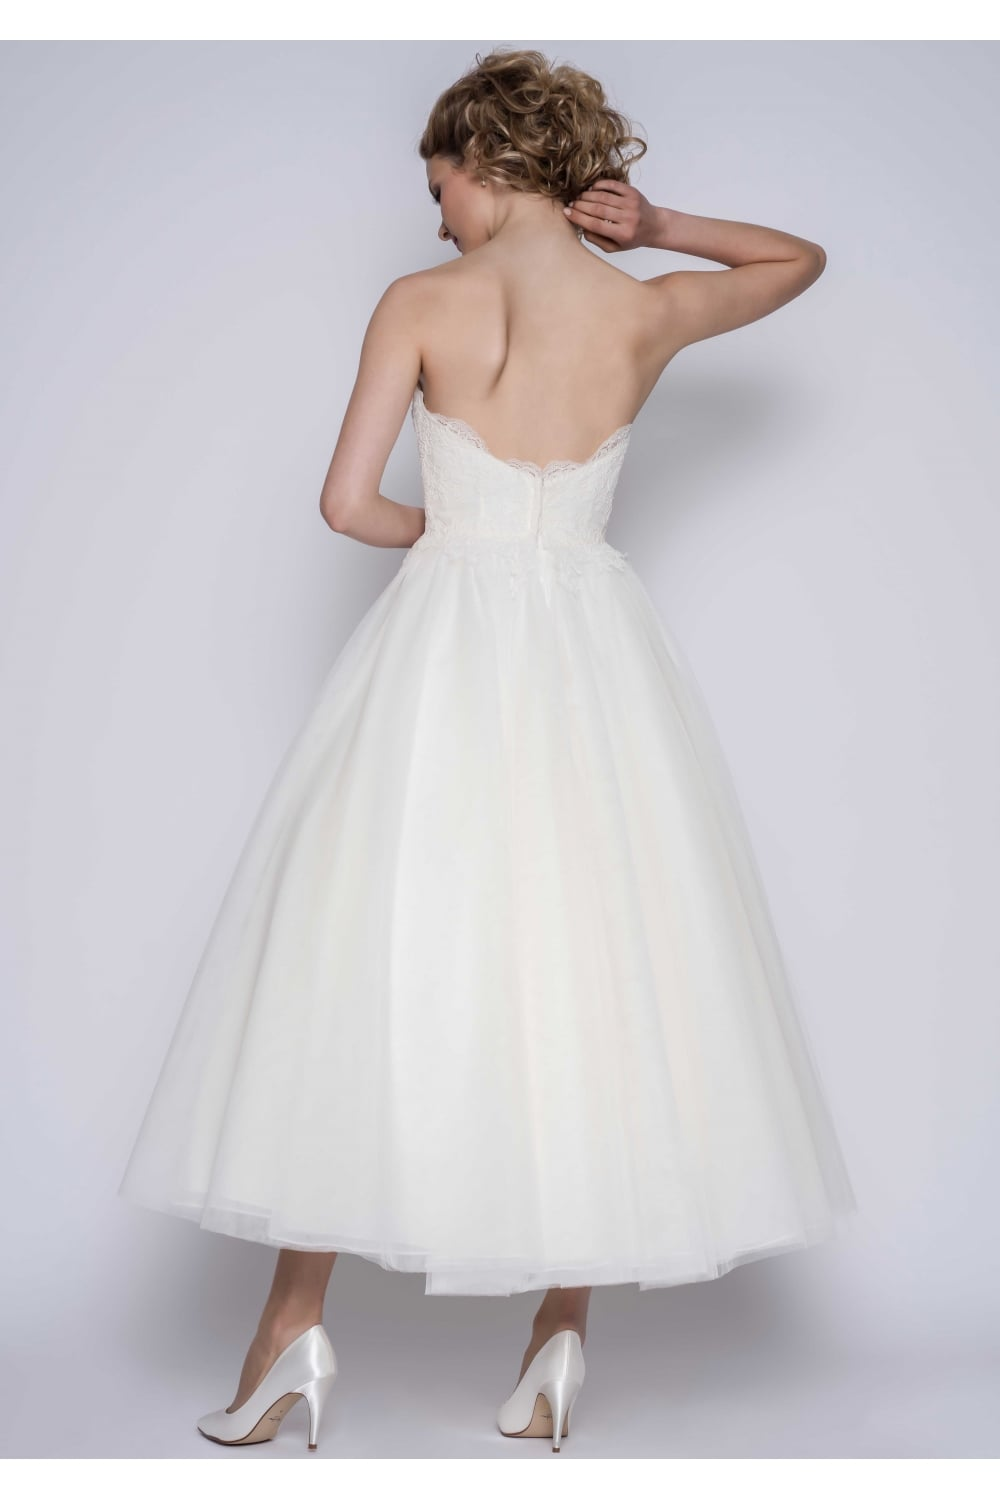 Loulou Bridal Matilda Calf Ankle Lace Strapless Wedding Gown